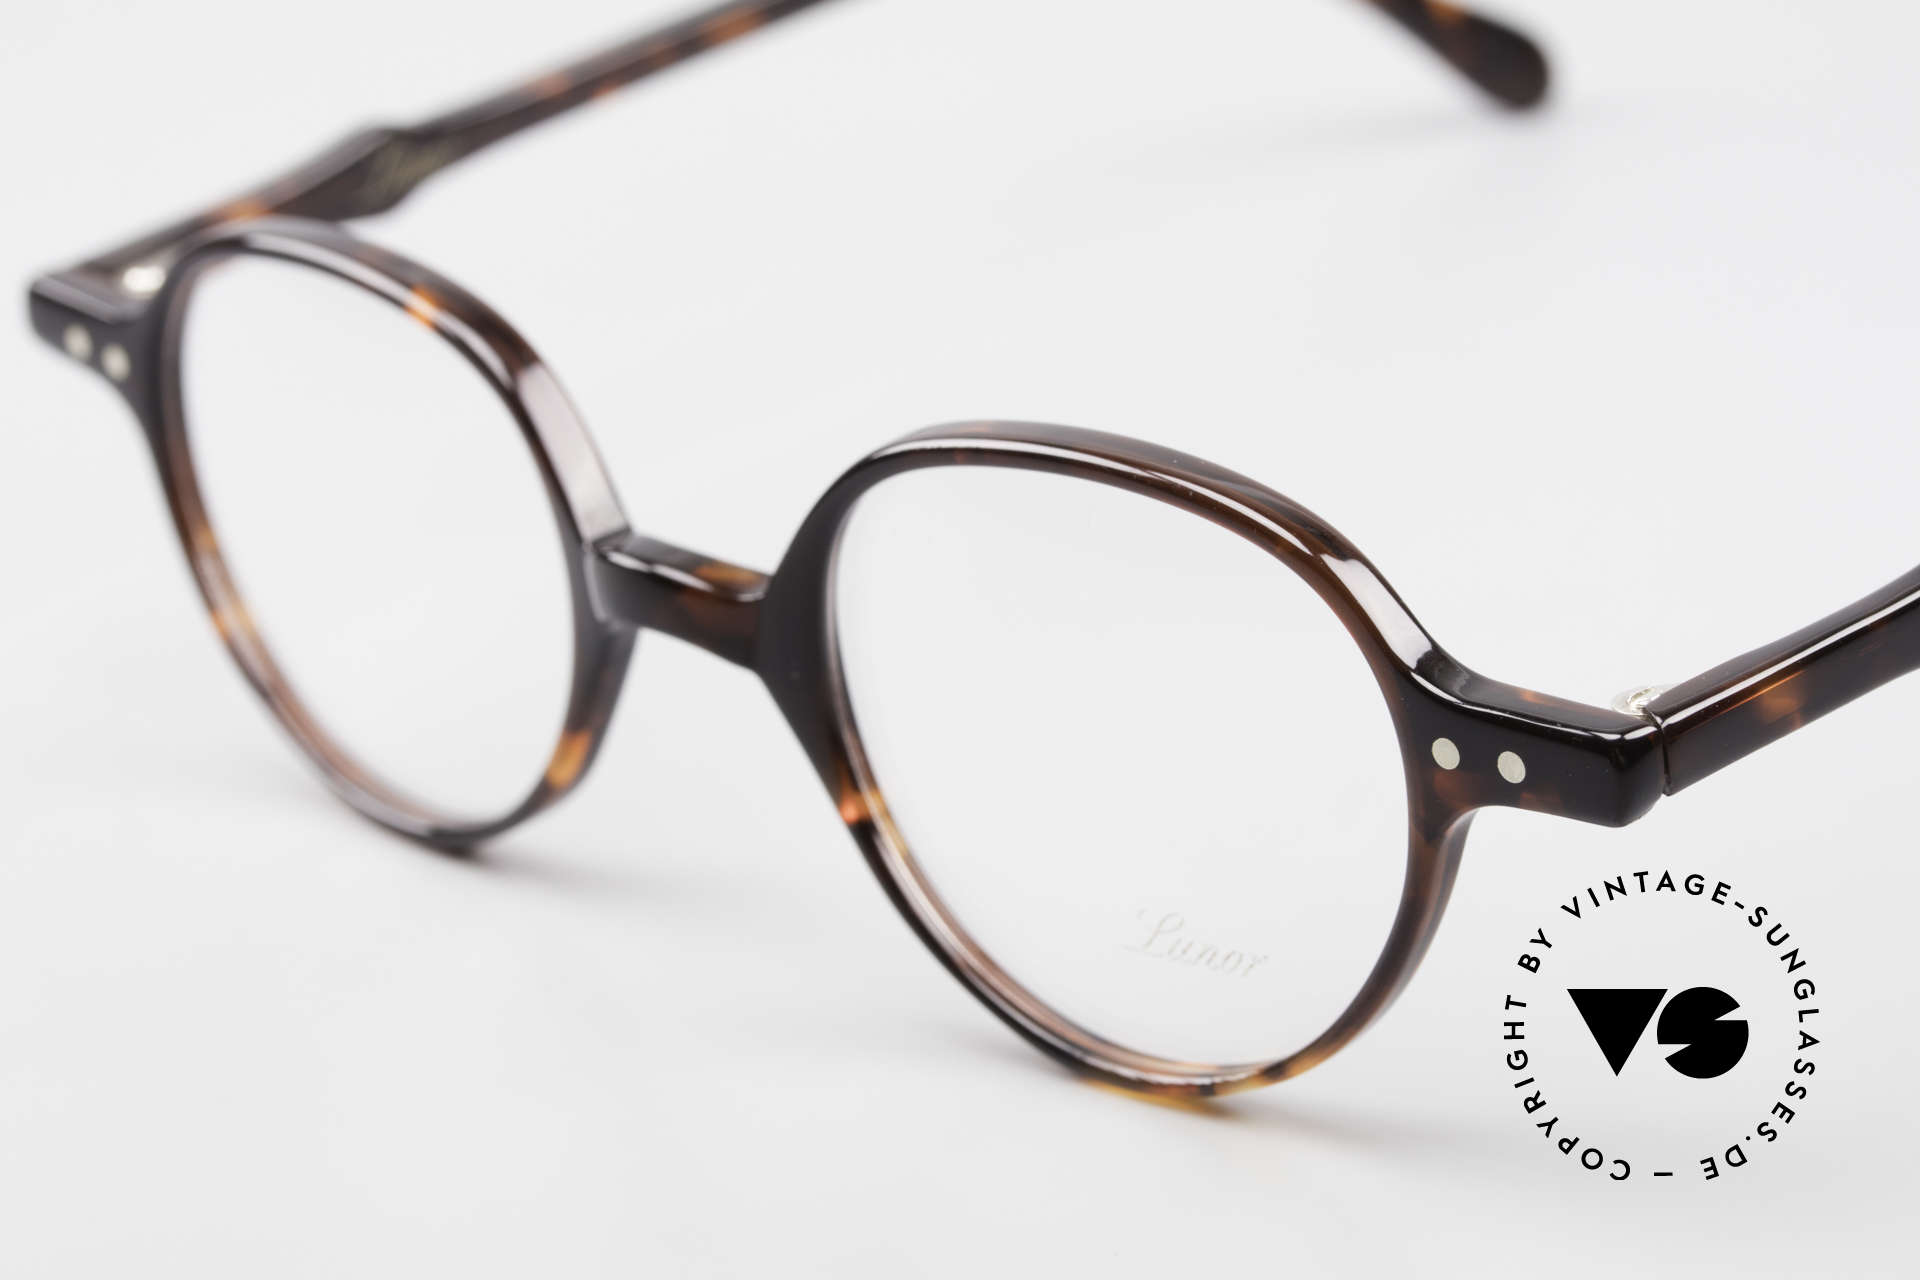 Lunor A43 Panto Acetate Eyeglass-Frame, 100% made in Germany, hand-polished, a true CLASSIC, Made for Men and Women